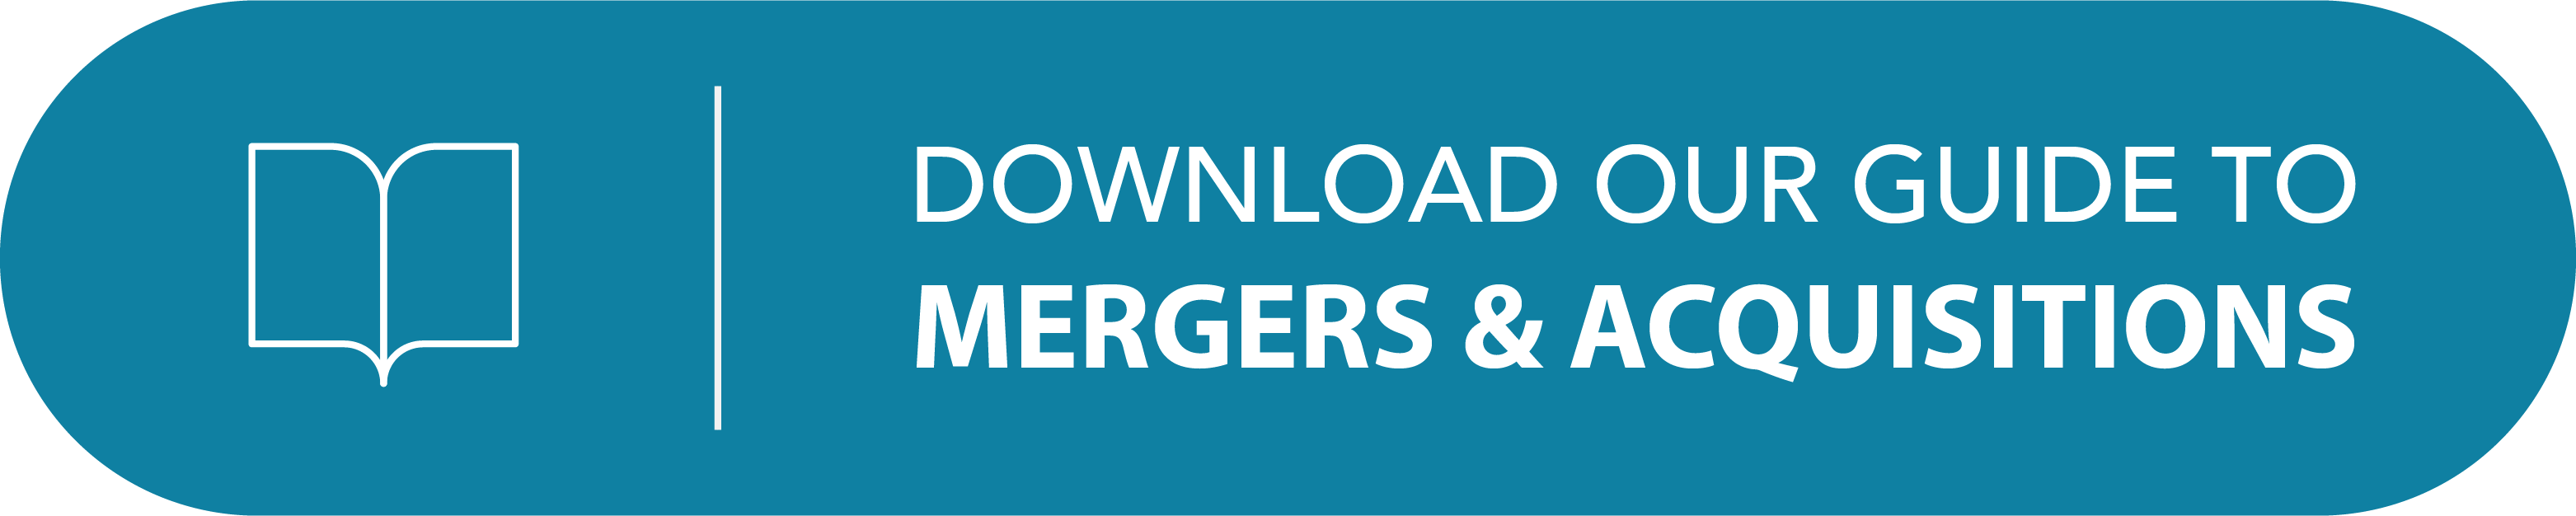 Download our HR Guide for Mergers and Acquistions!